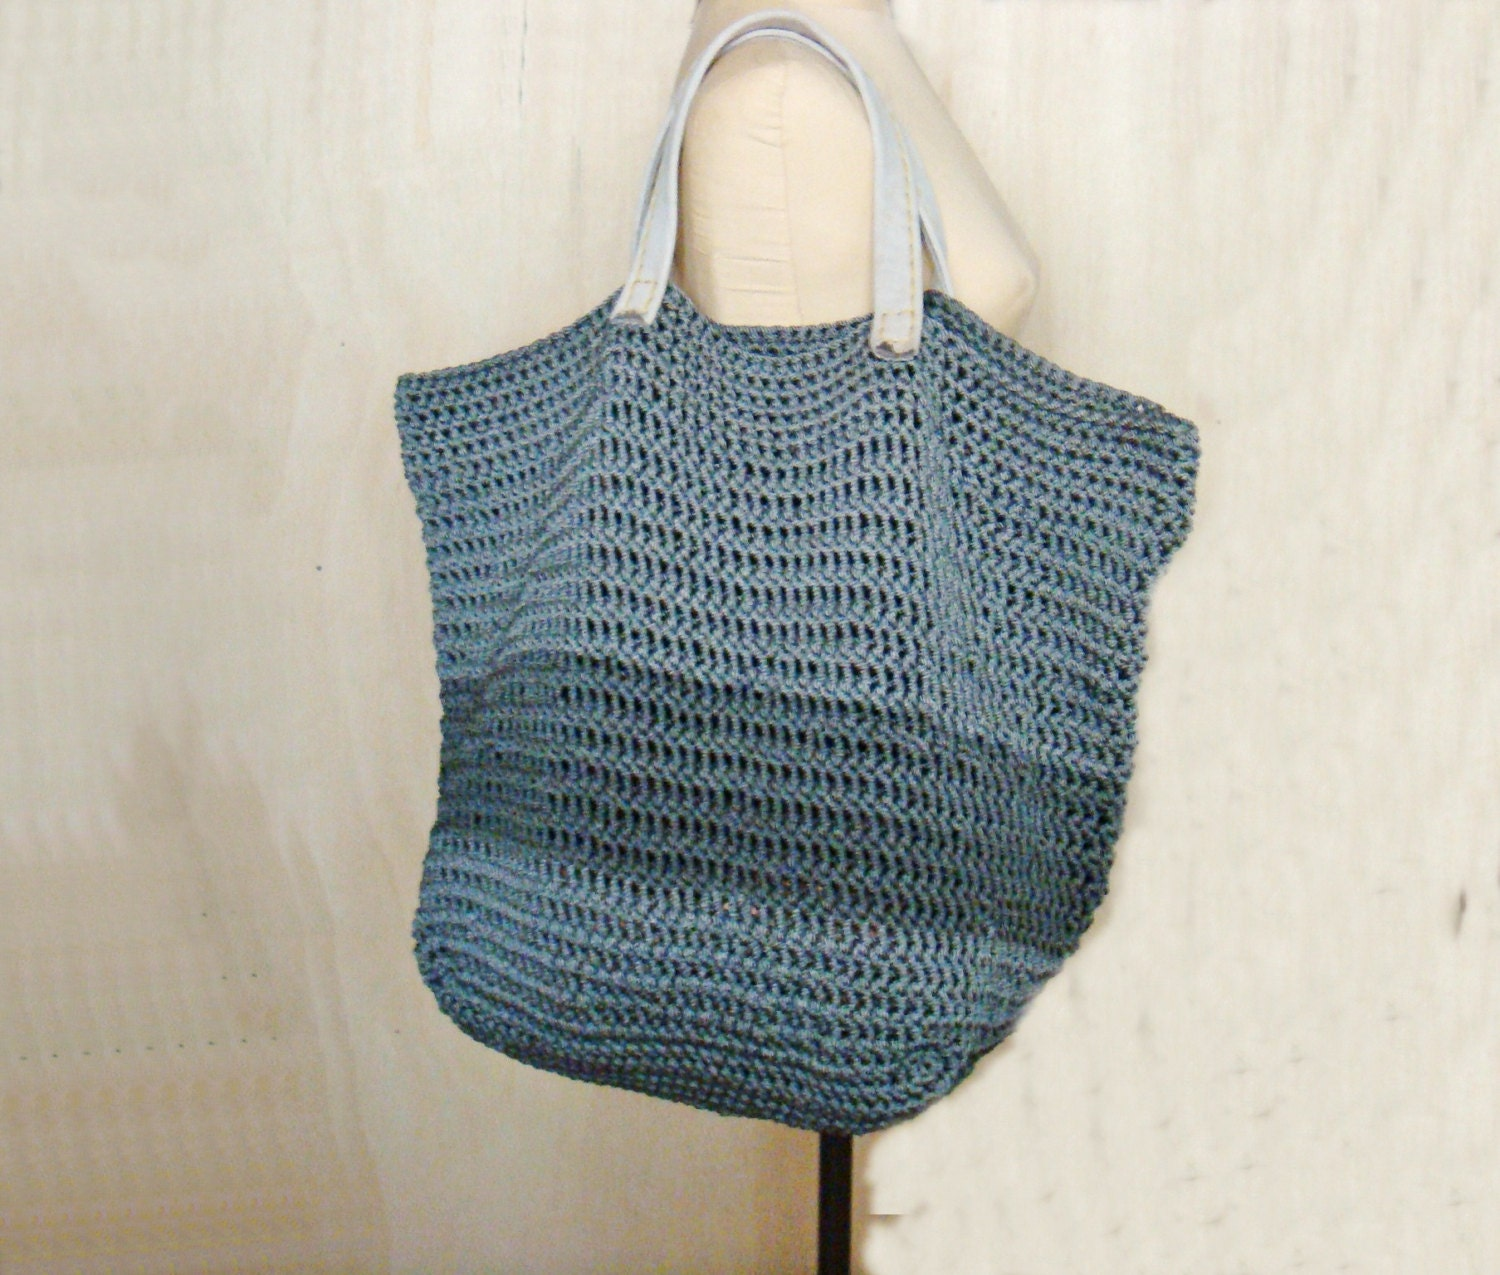 Leather Crochet Bag : PDF Crochet PATTERN Large Tote Bag with Leather by PATTERNSbyFAIMA